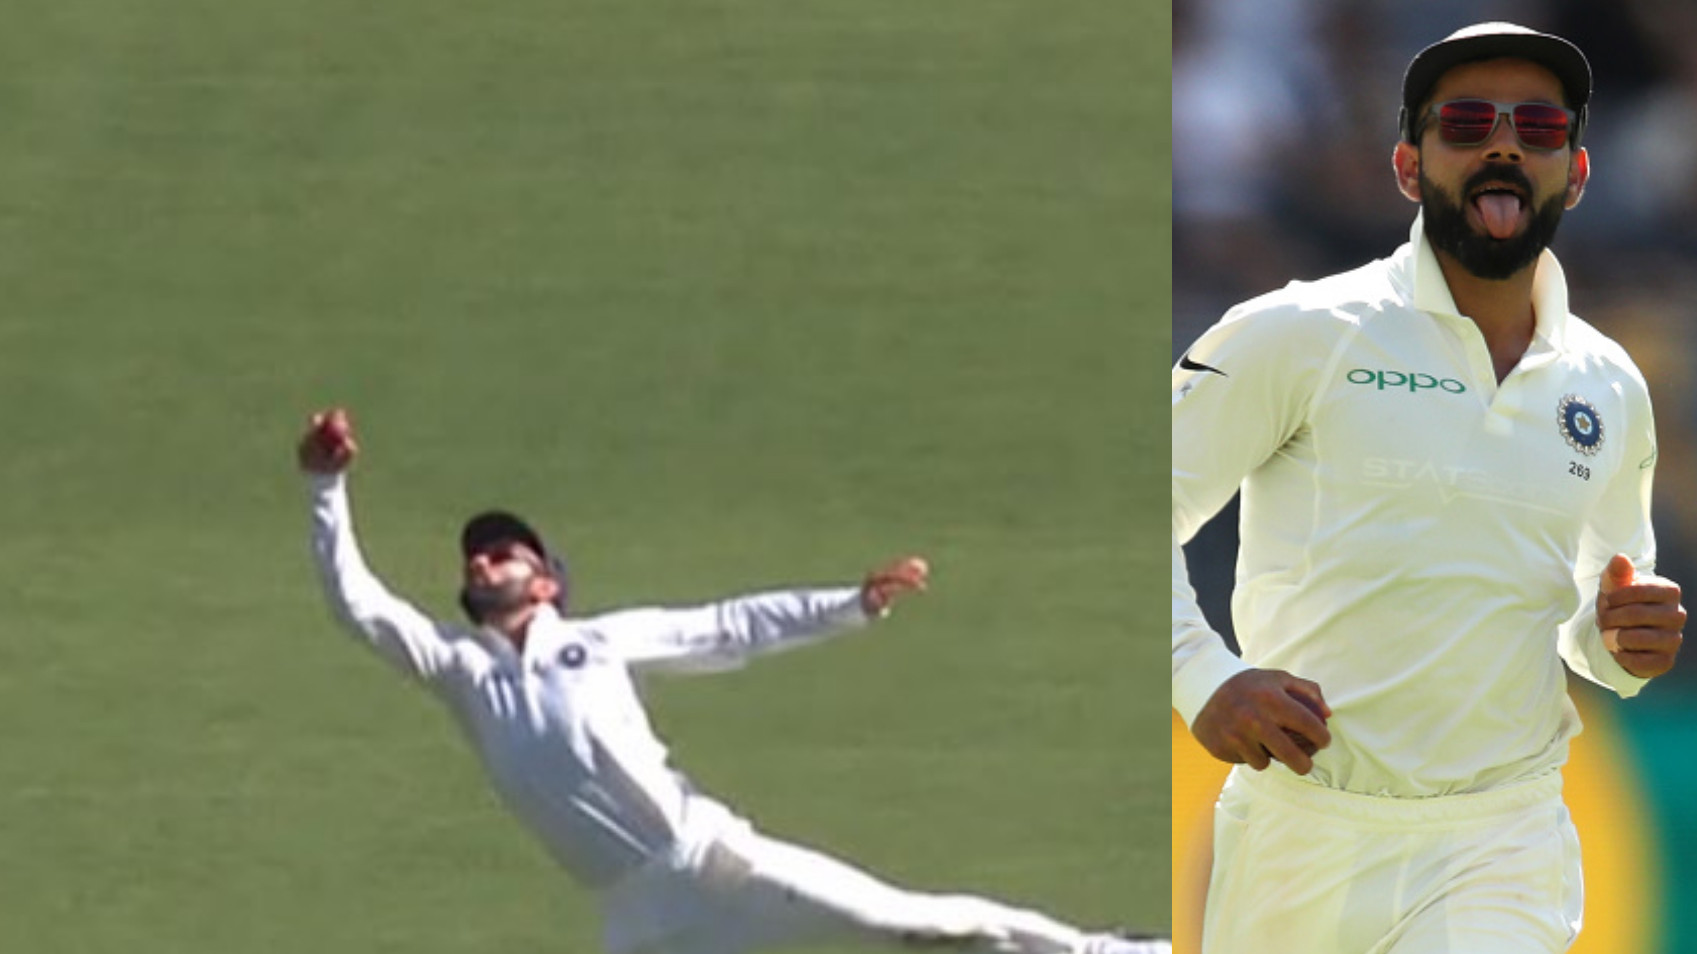 AUS v IND 2018-19: WATCH – Virat Kohli takes a one-handed blinder to remove Peter Handscomb